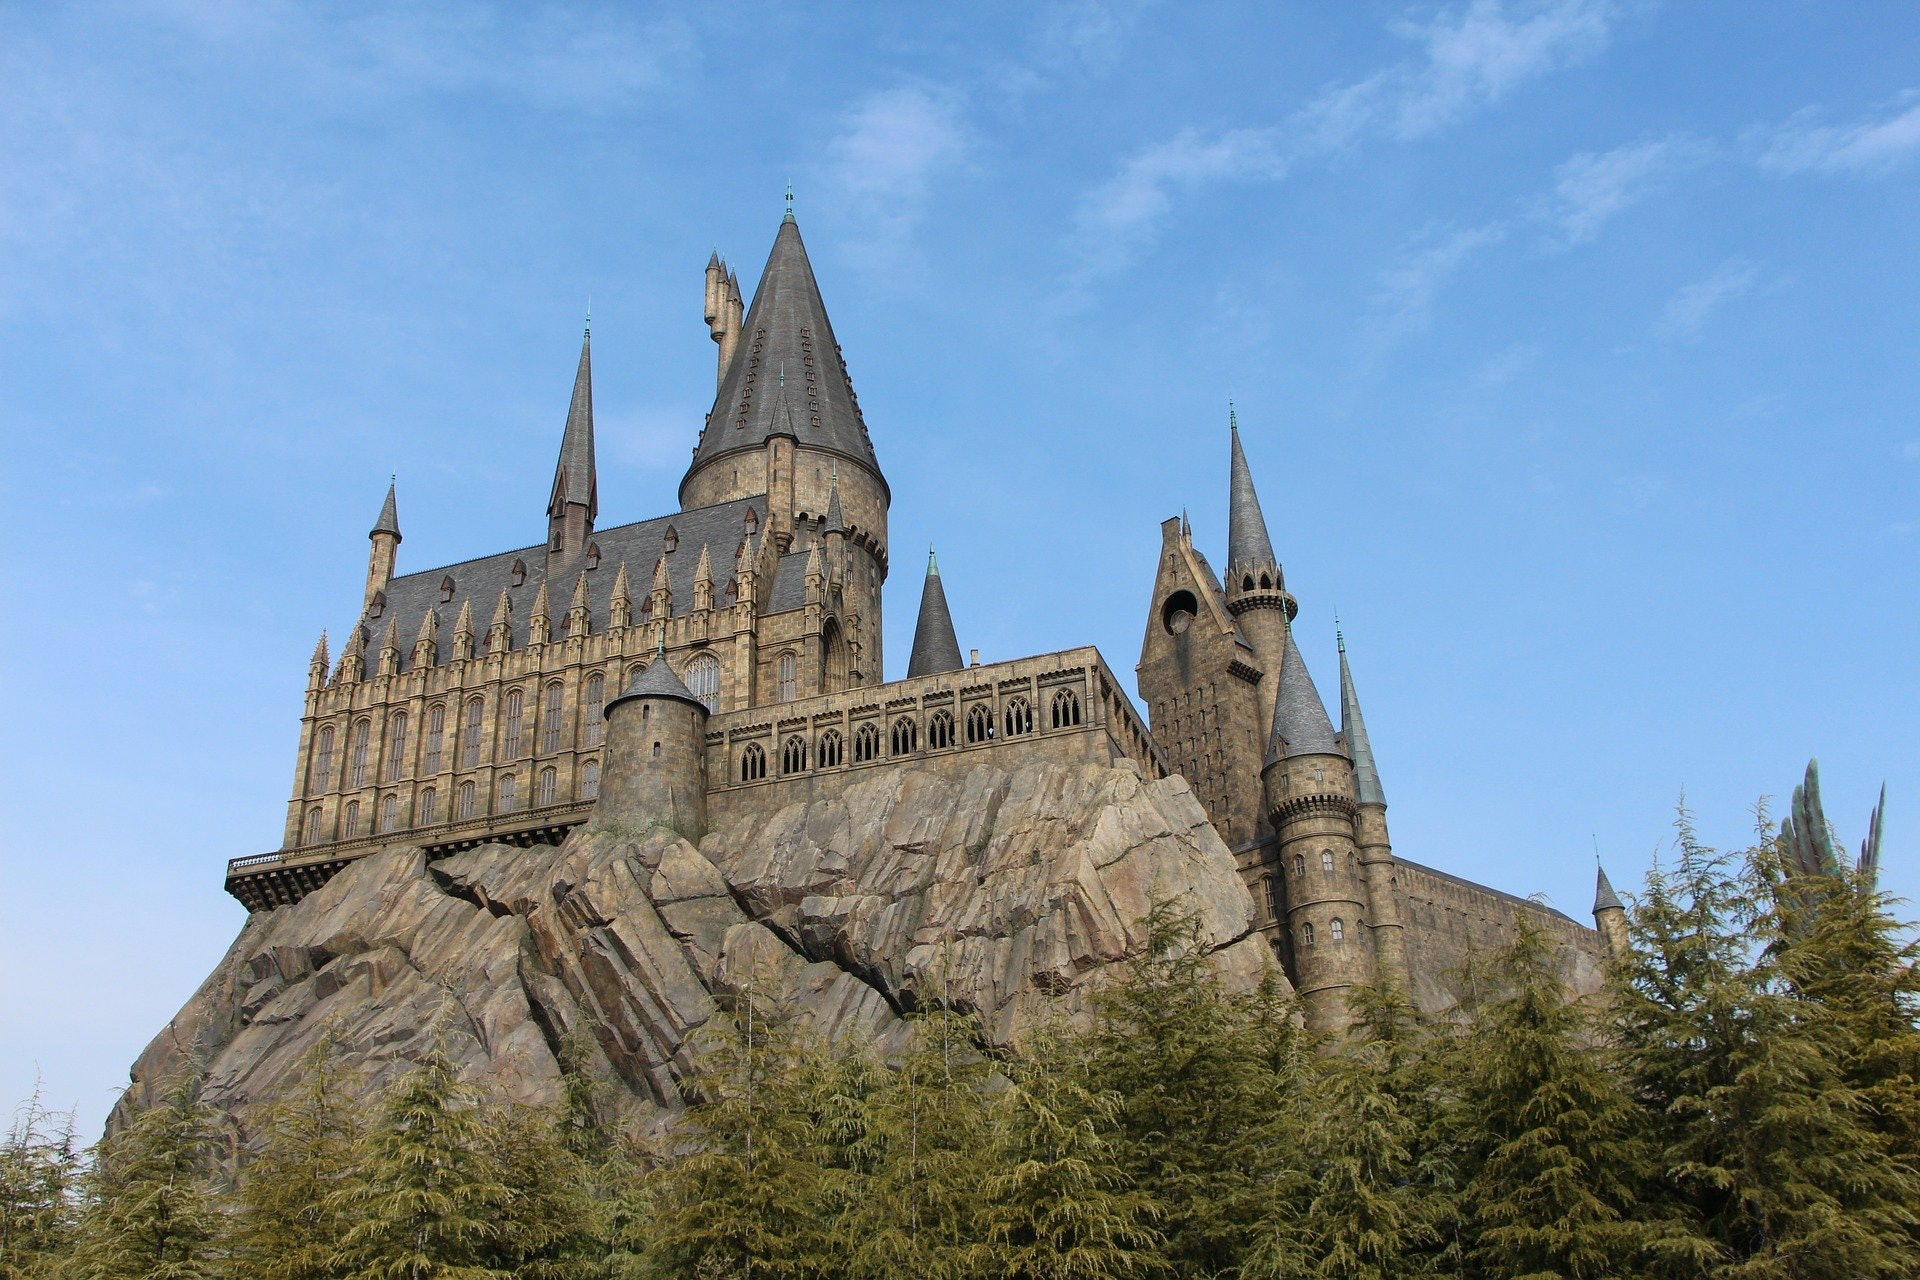 The 10 Best Harry Potter Zoom Backgrounds To Add Some Magic To